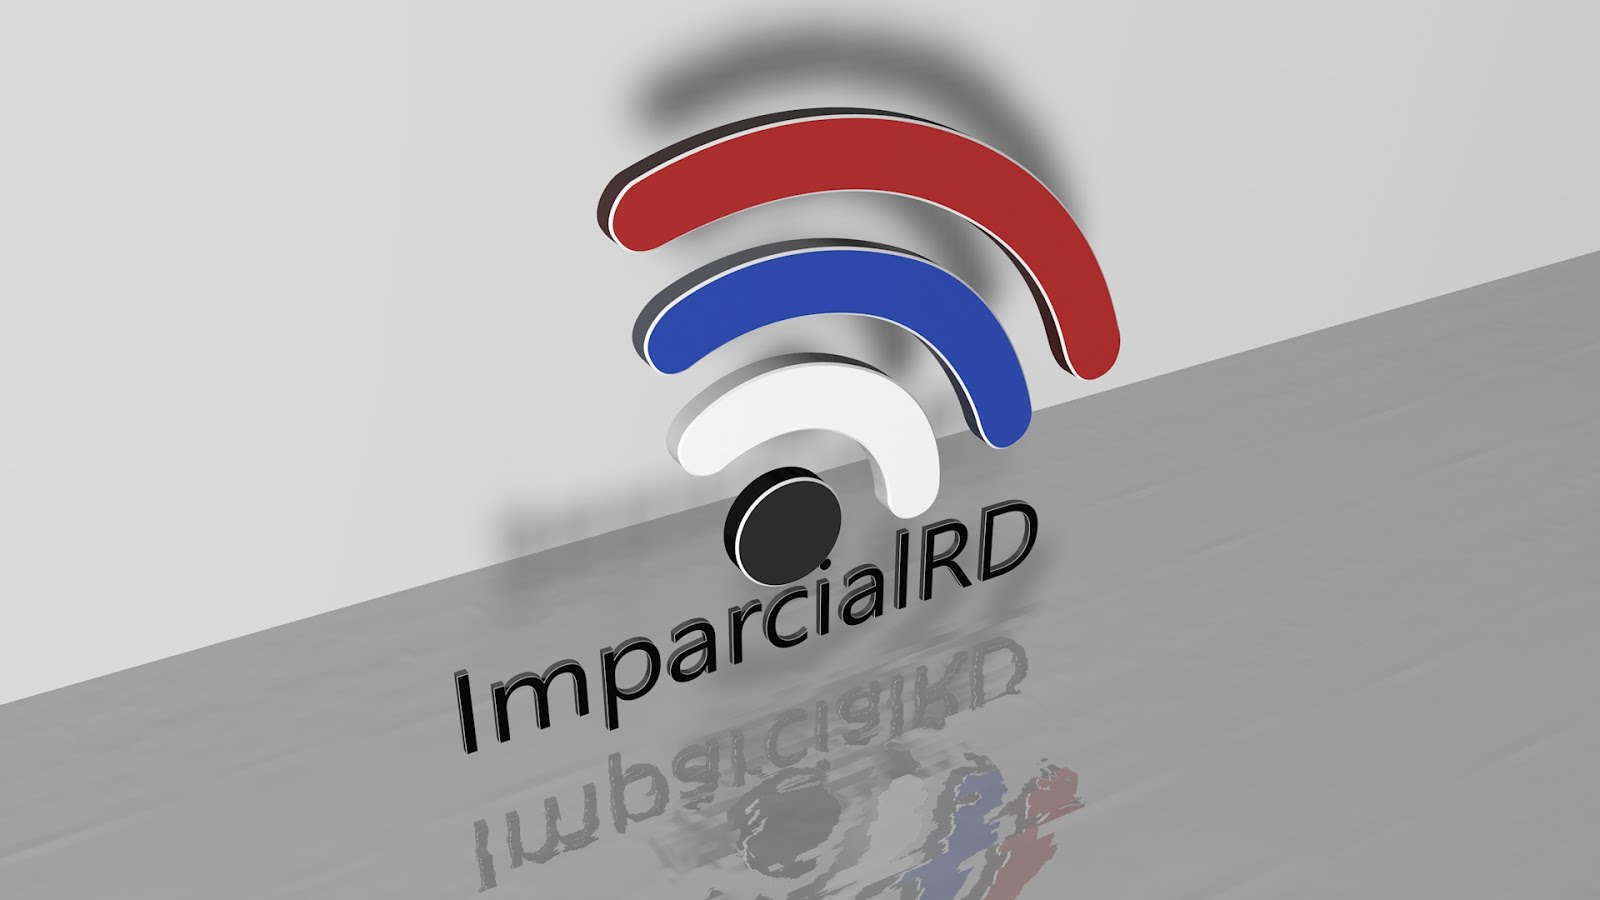 Imparcial RD